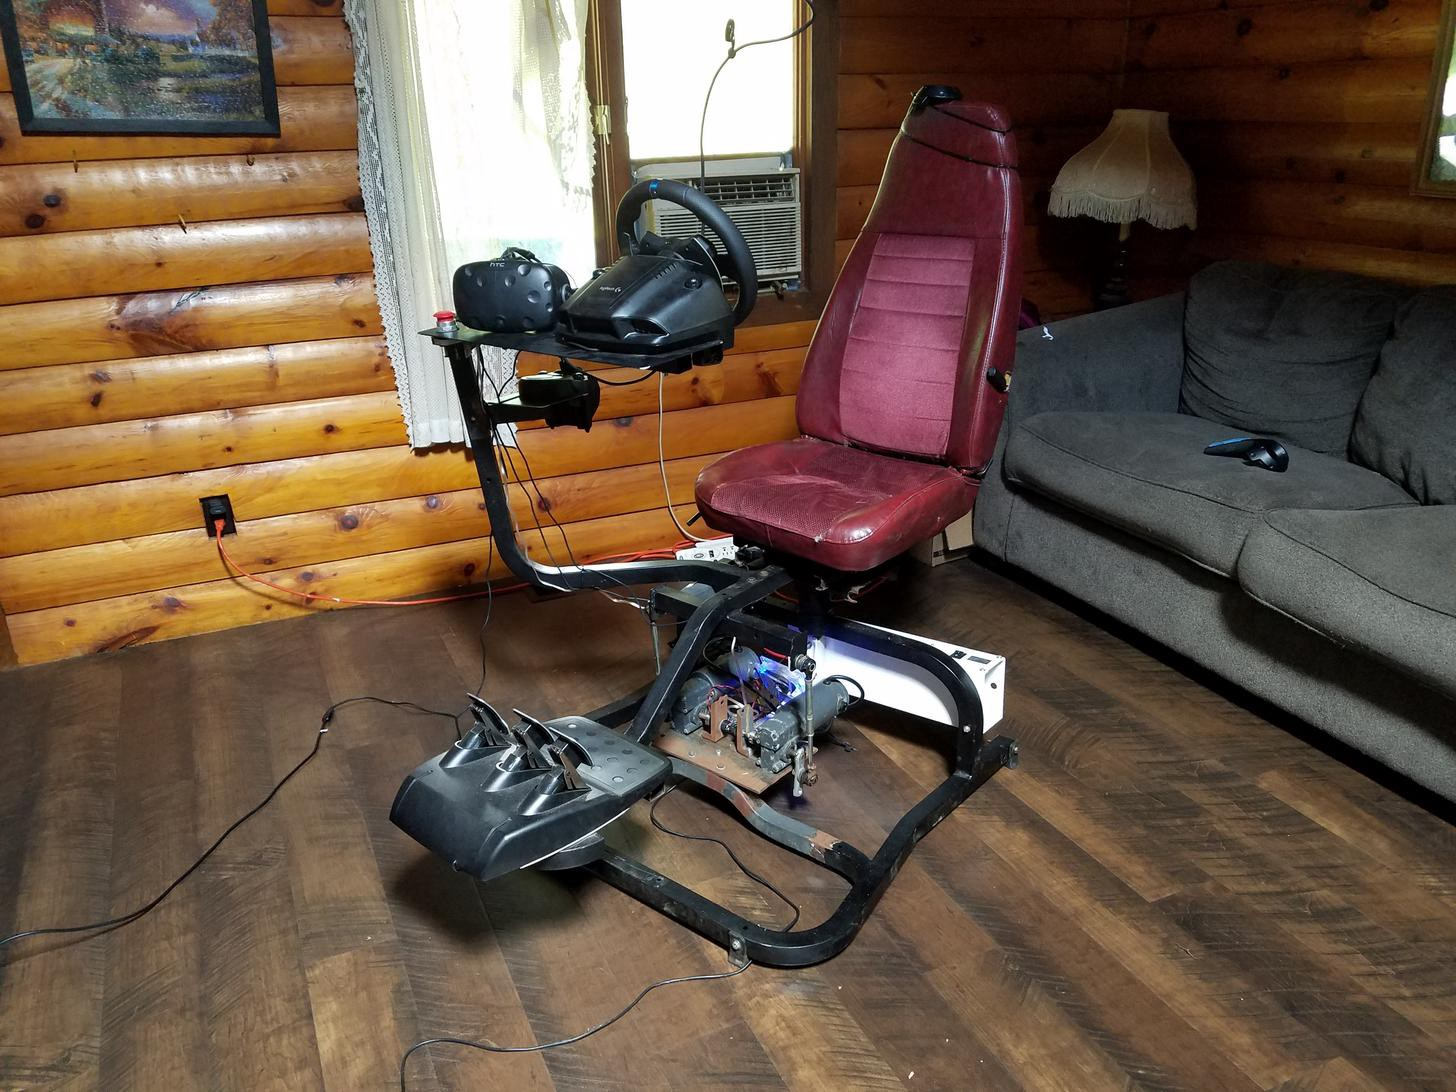 Diy Racing Simulator Is A Repurposed Masterpiece